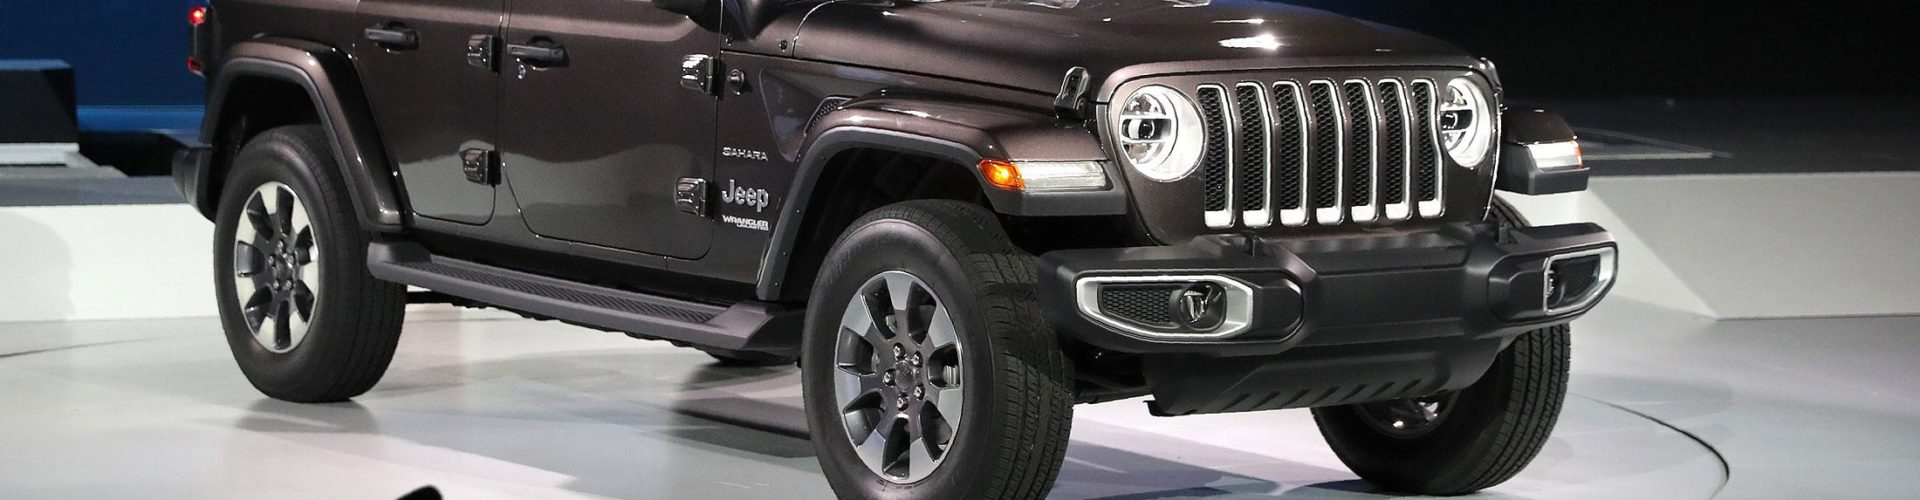 BREAKING: Jeep May Halt Production of JL, Claims Redesign Needed